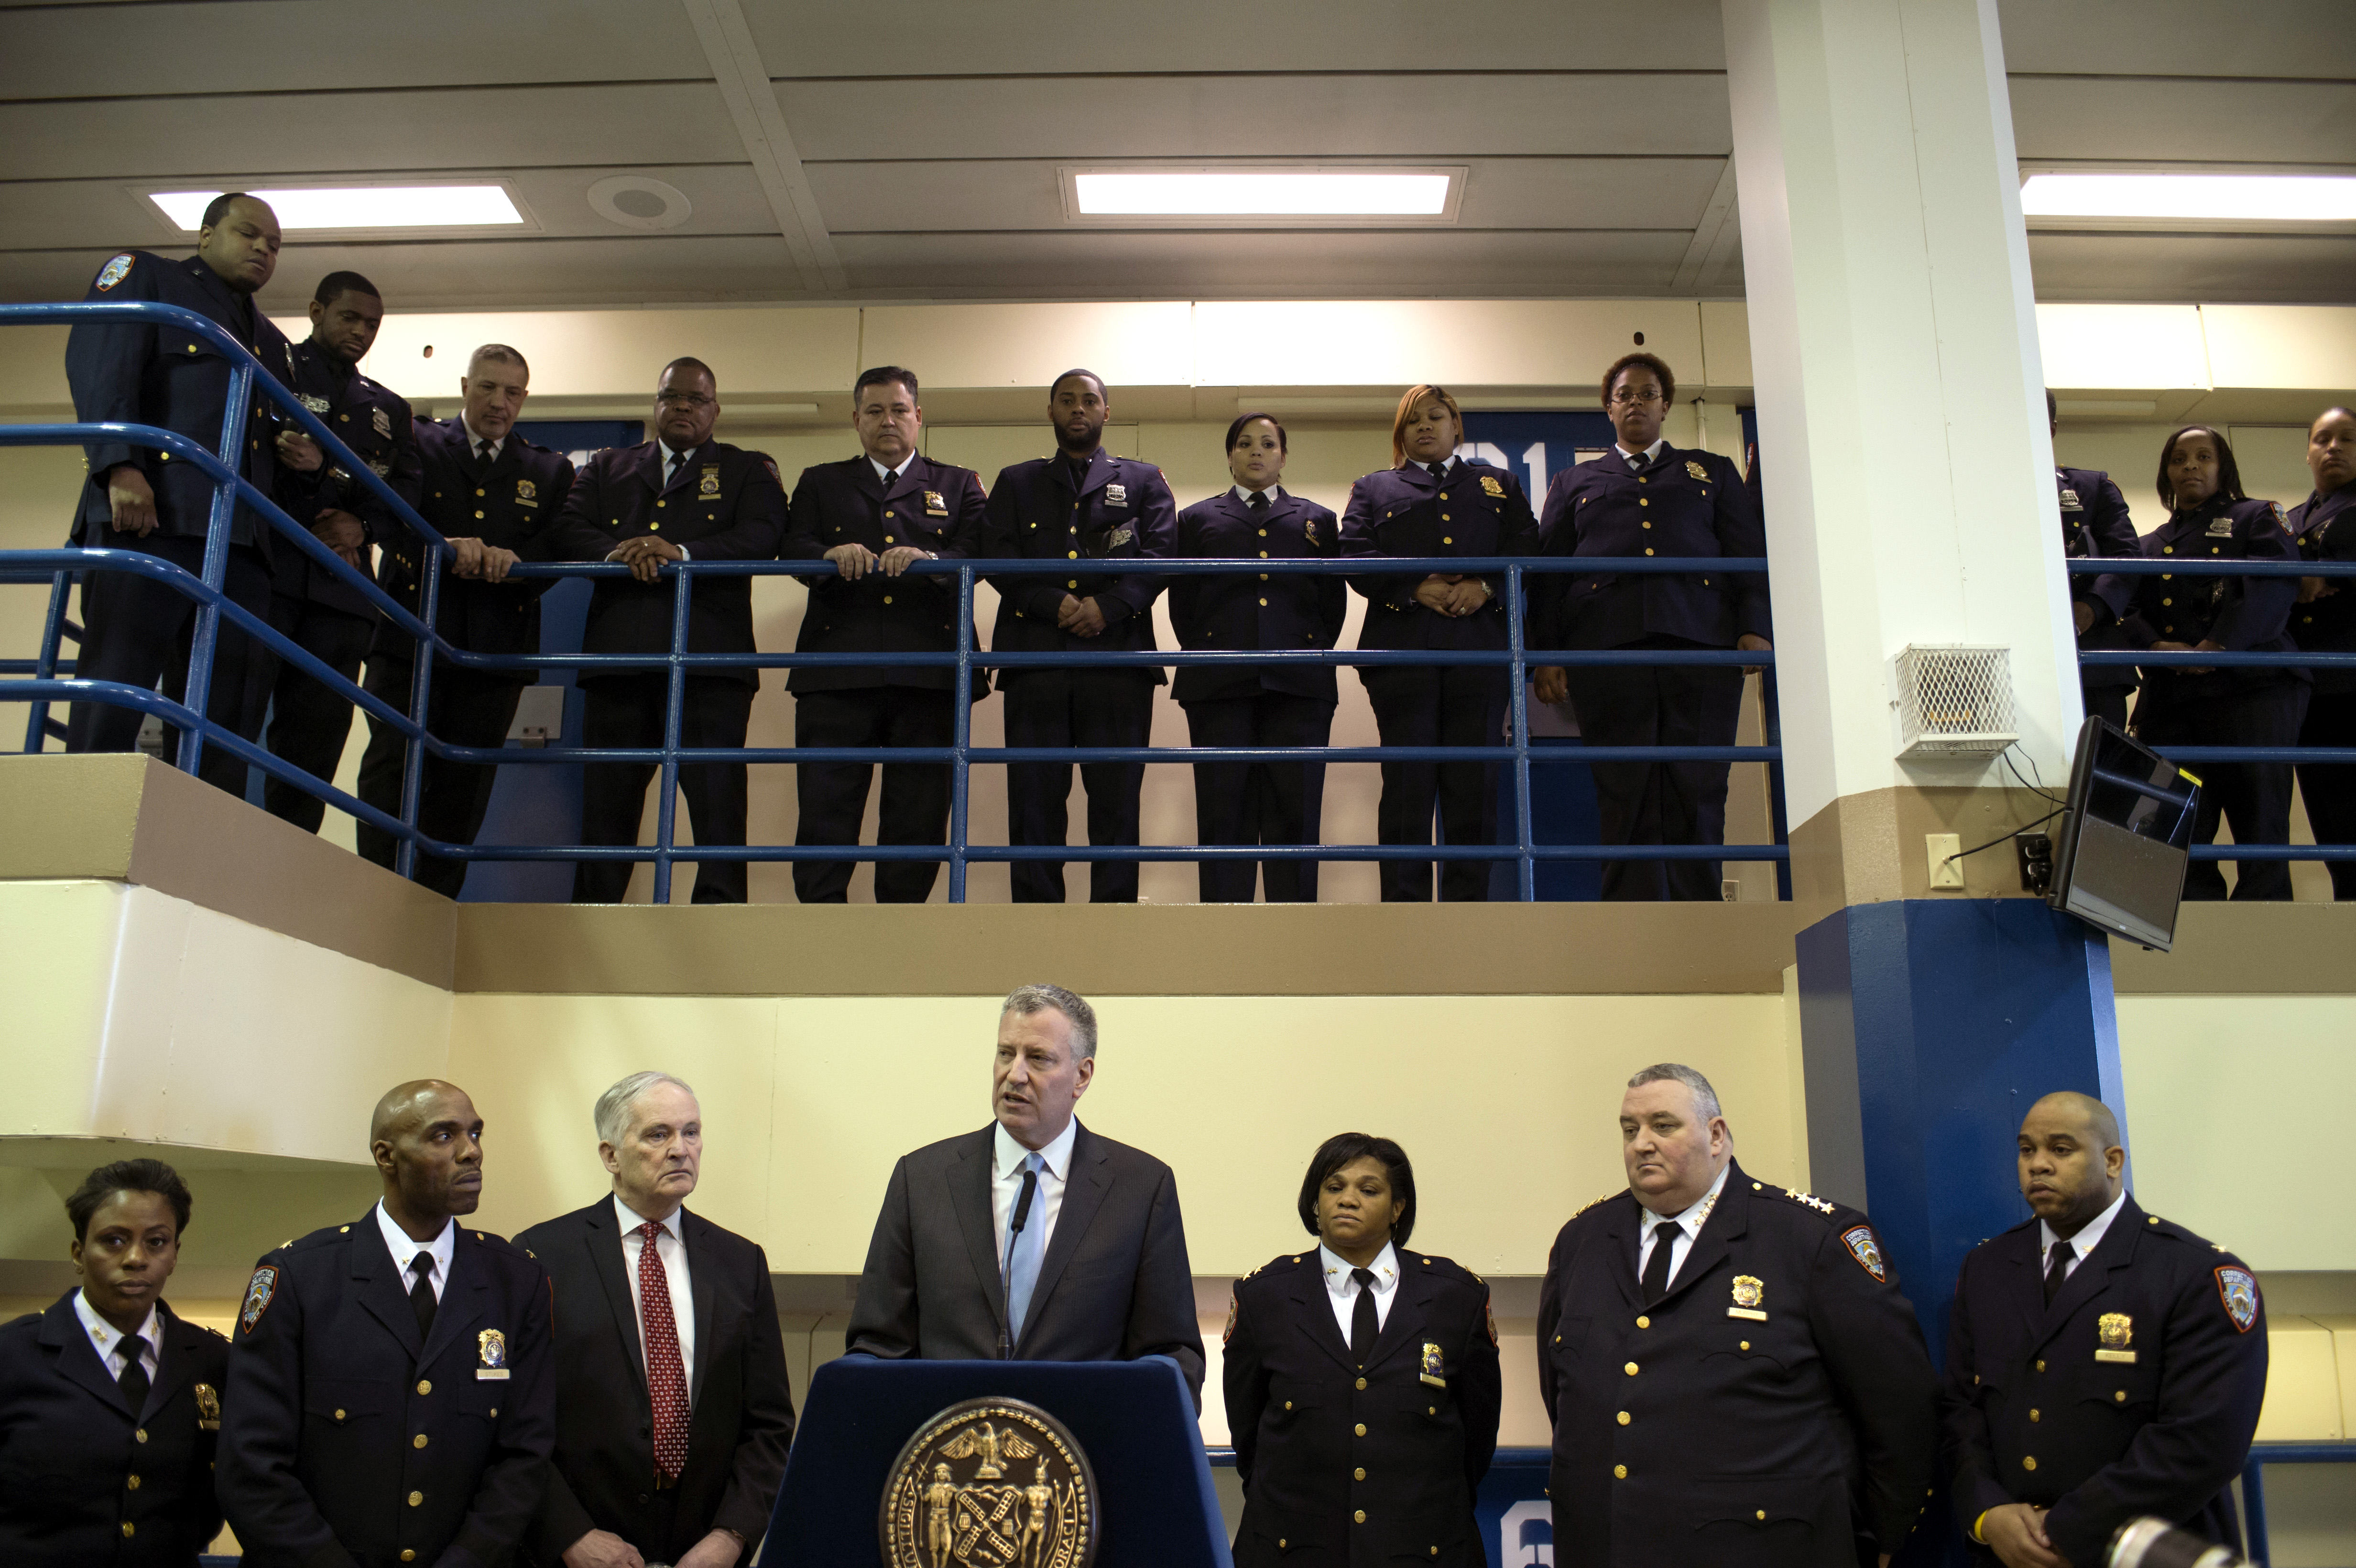 Mayor Bill de Blasio held a press conference in a new Enhanced Supervision Housing Unit at Rikers Island. To the mayor's left is Correction Commissioner Joseph Ponte. (Rob Bennett/Mayoral Photography Office)